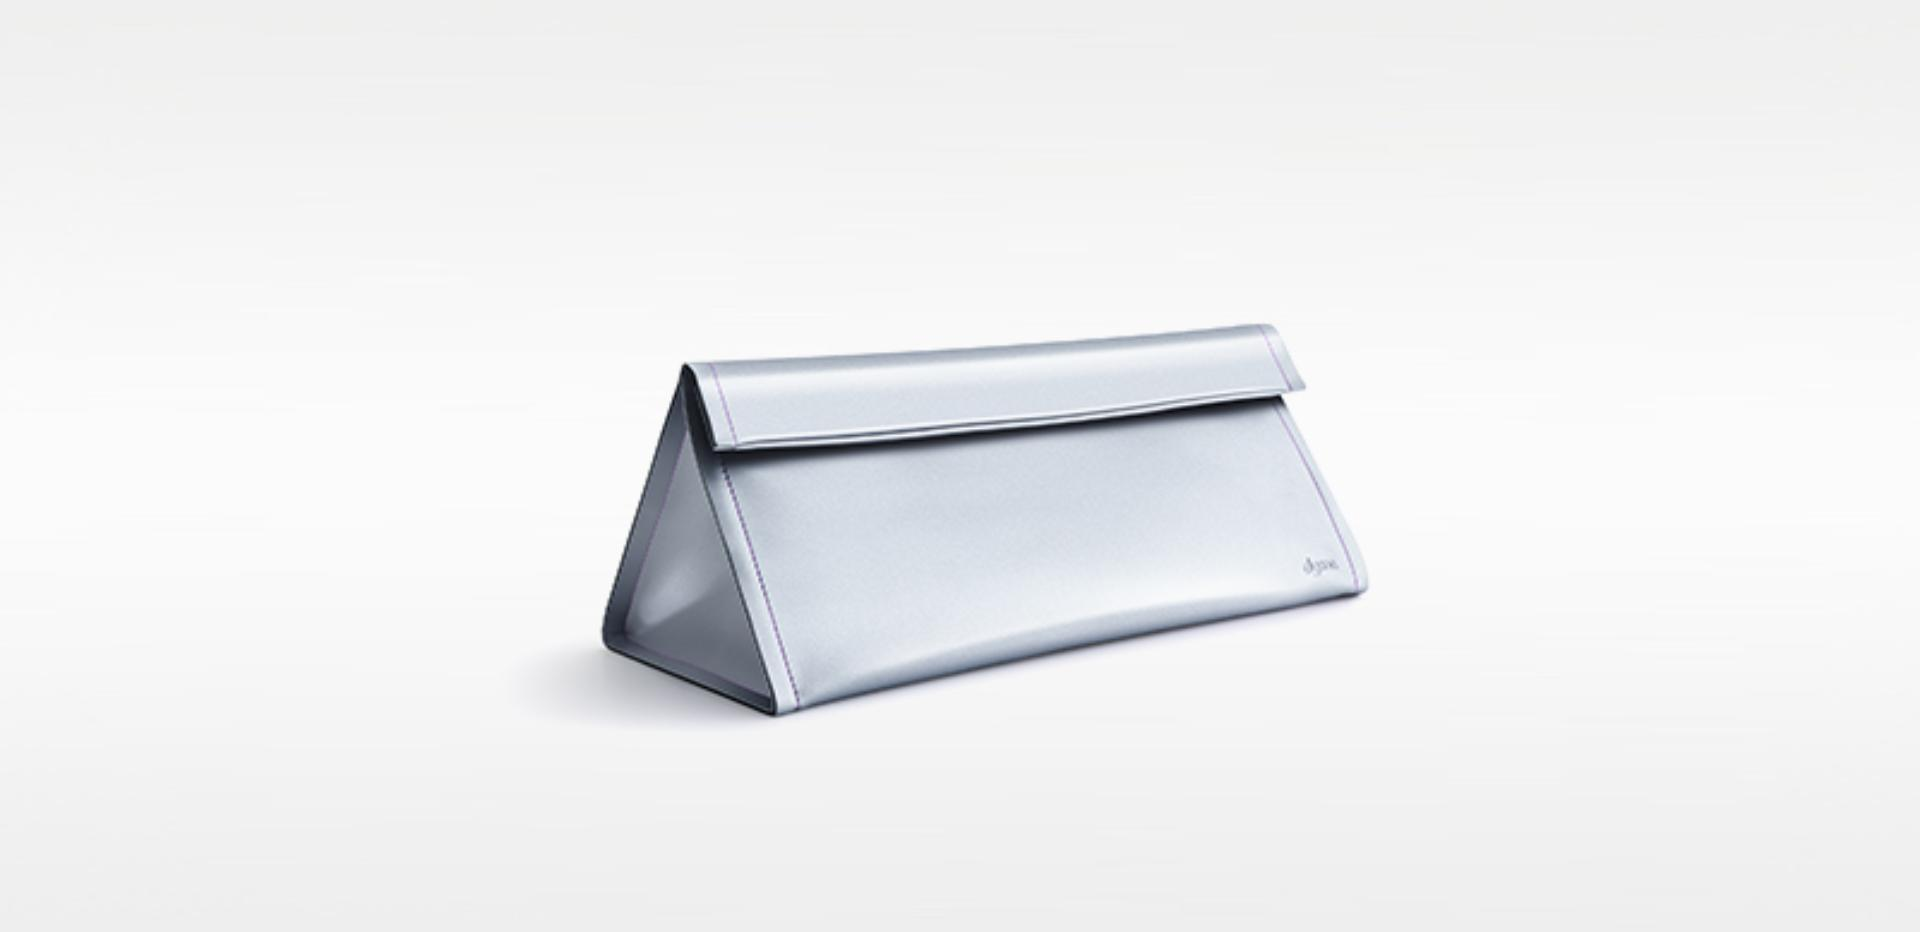 Platinum storage bag for the Dyson Supersonic™